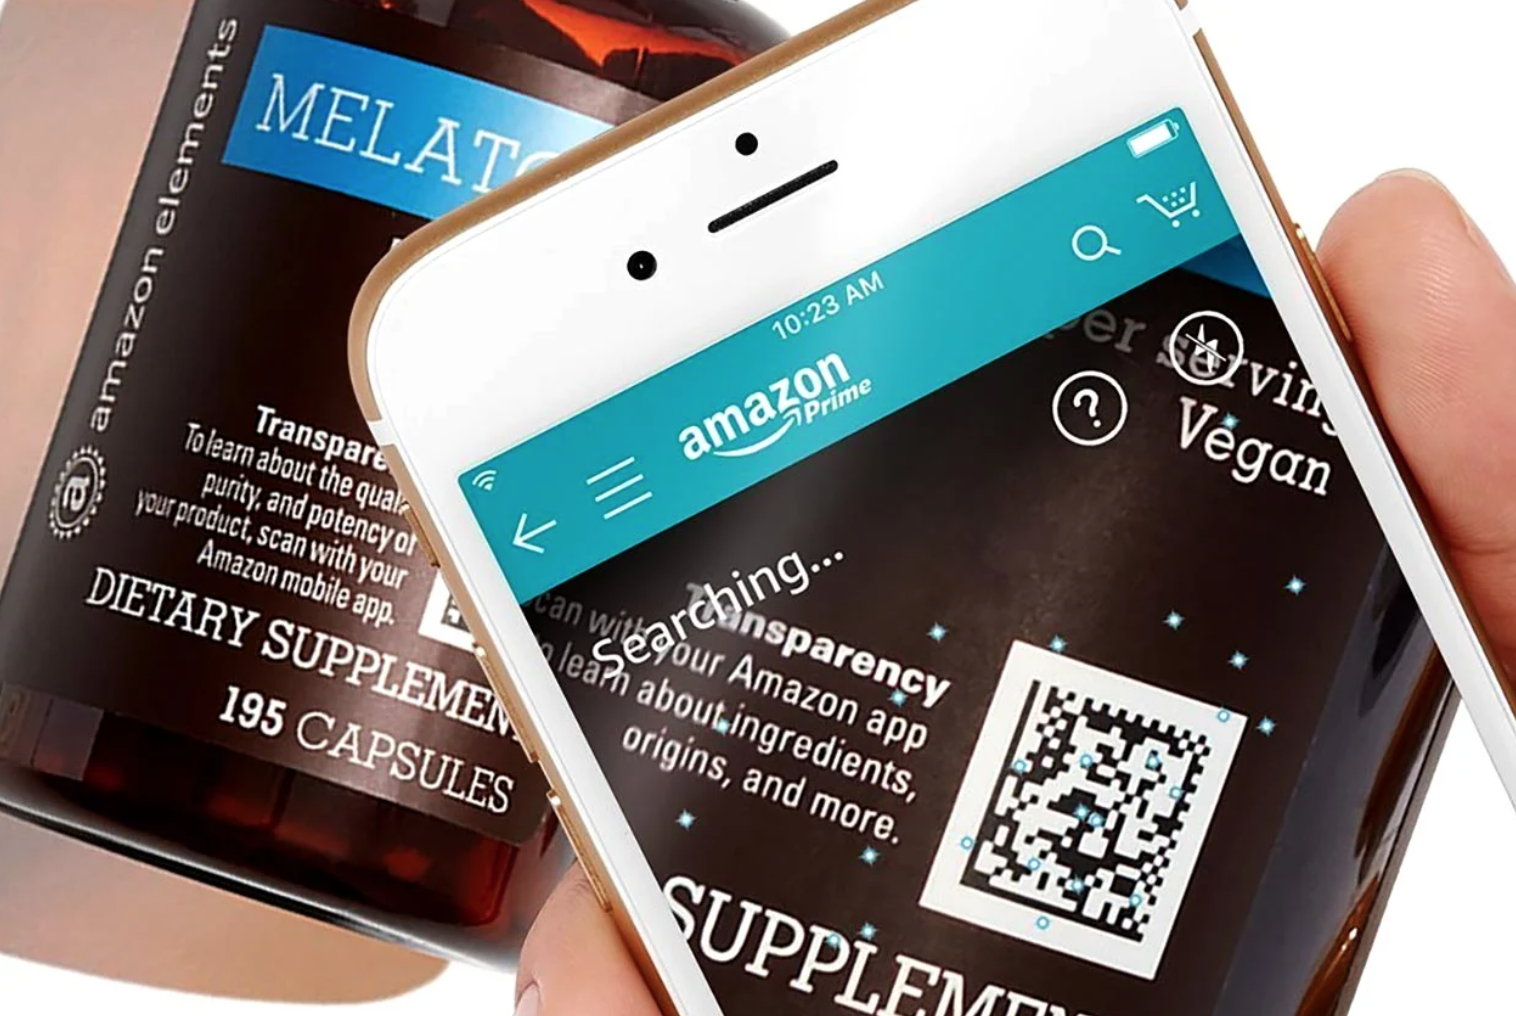 A phone scanning a QR code product information on Amazon Effect supplements